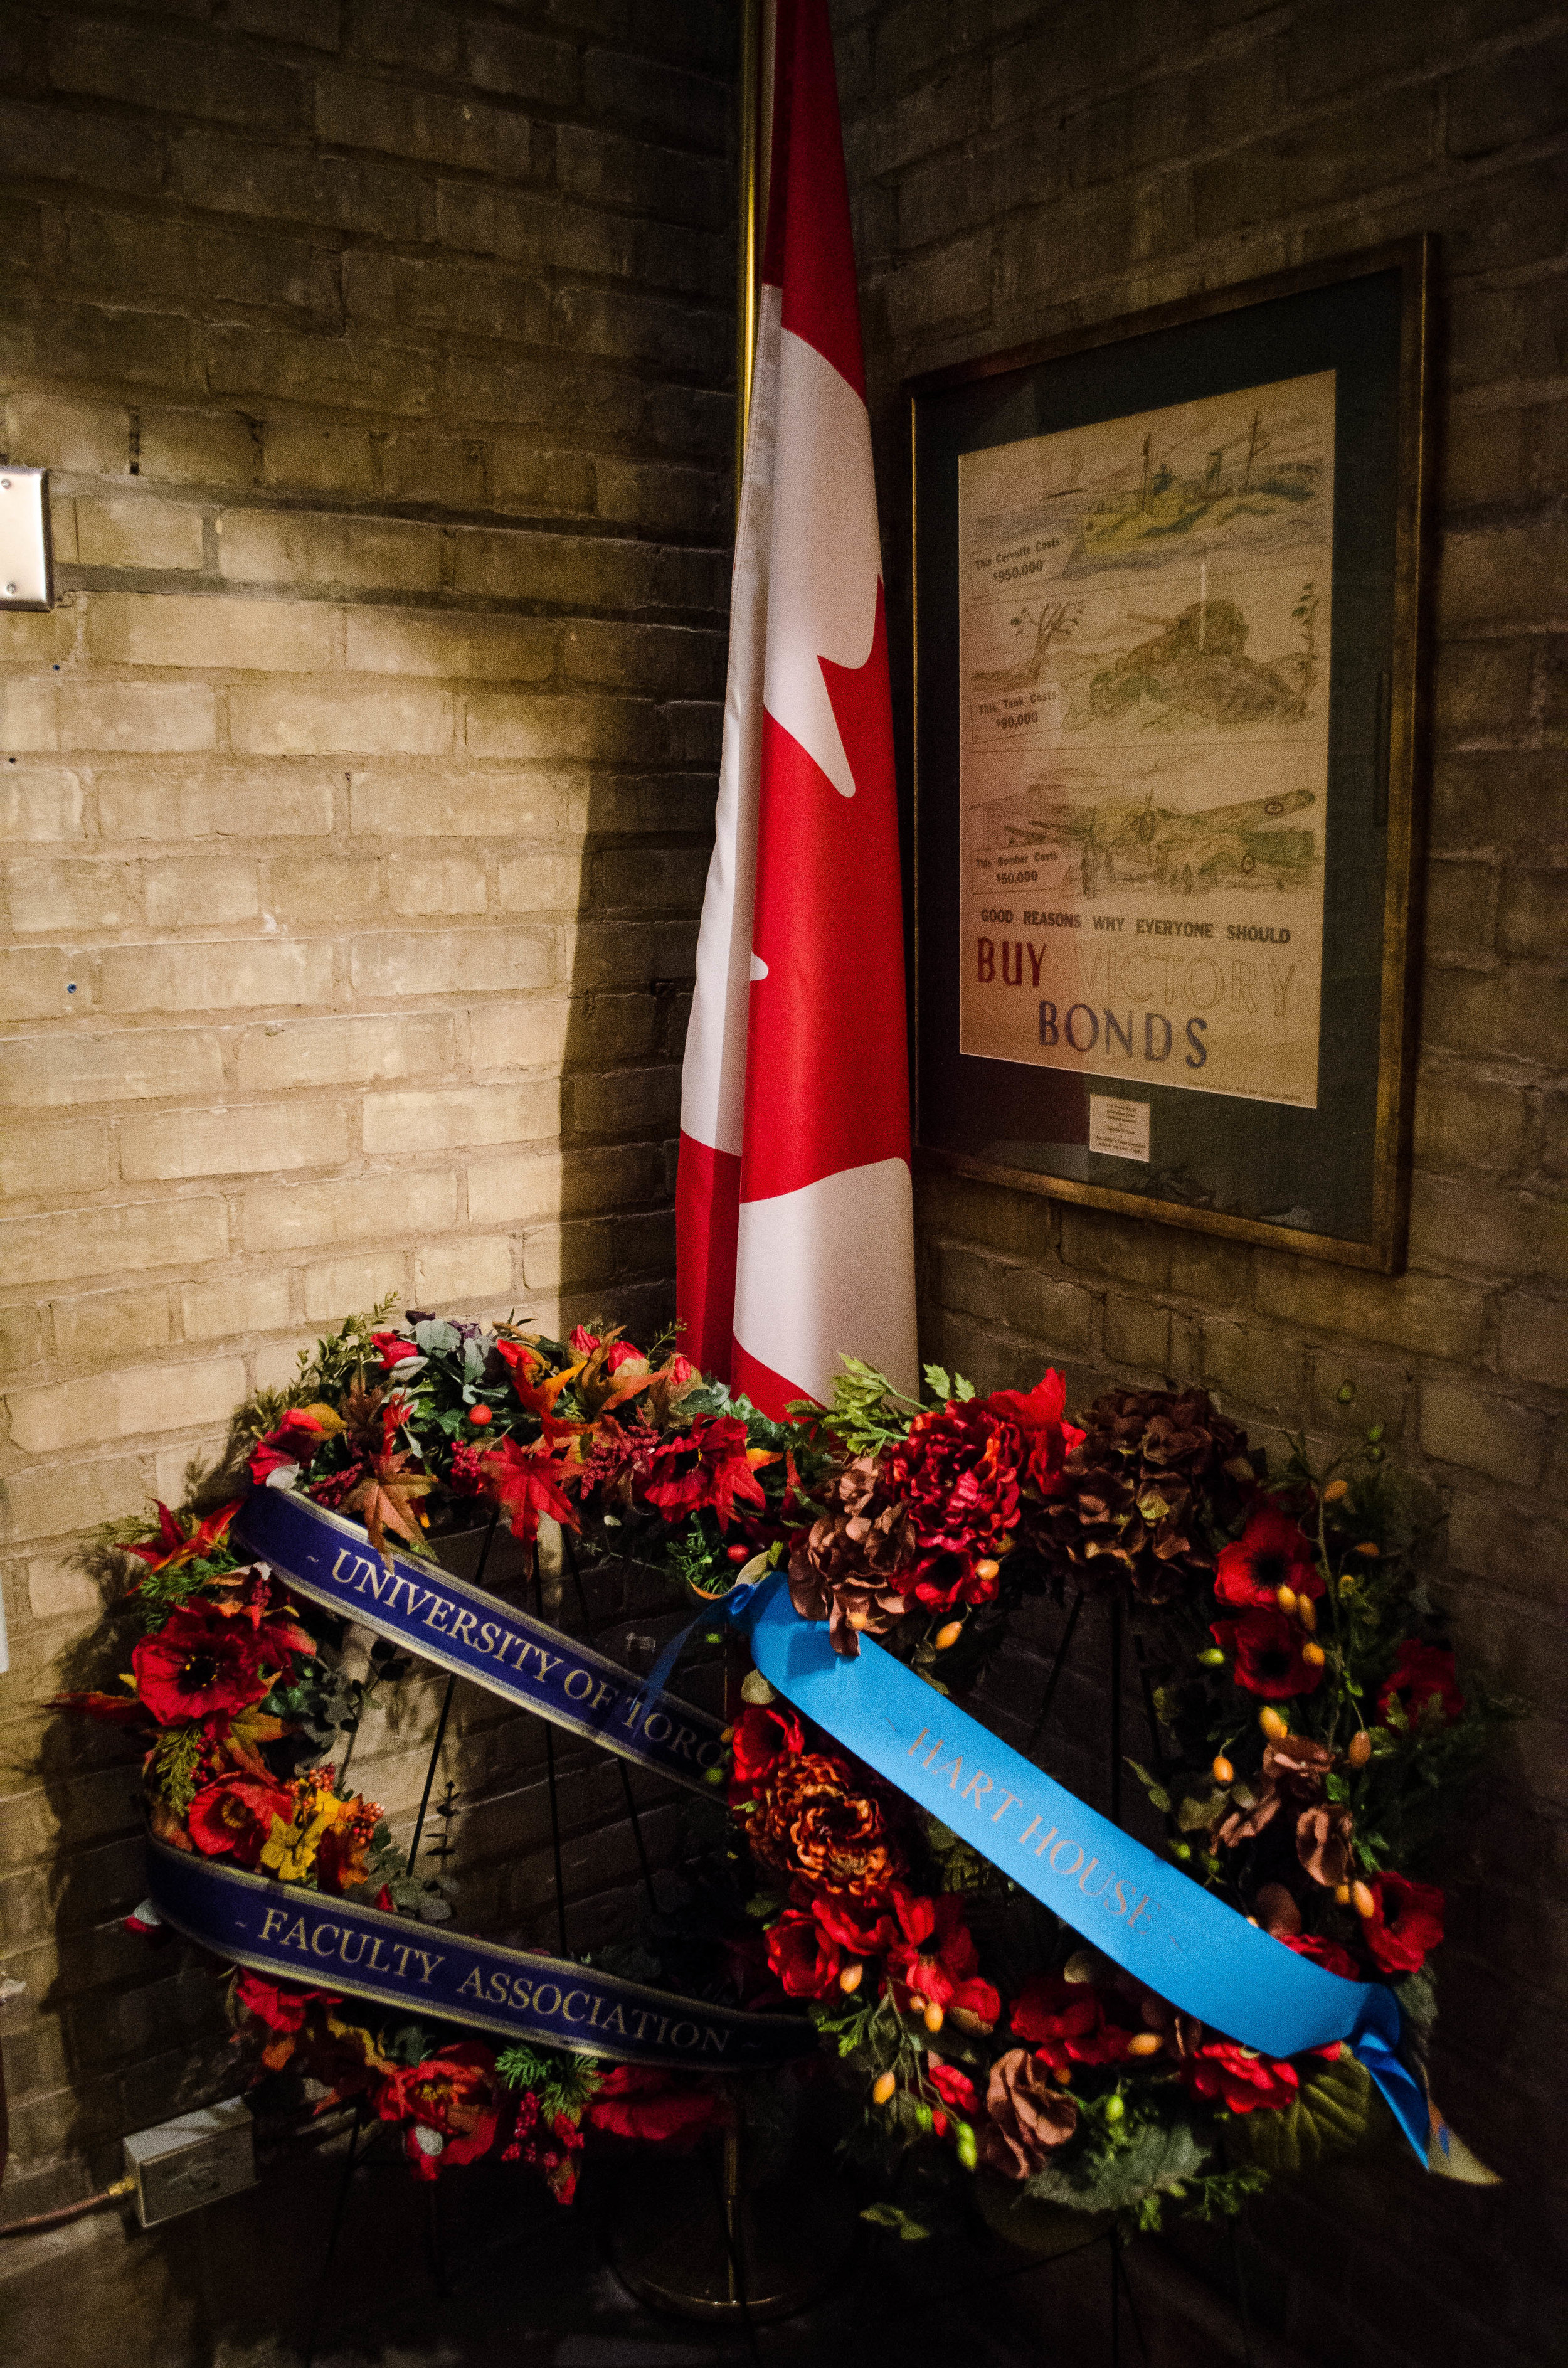 Unviersity of Toronto's Rememberance day ceremony is held at Soldiers' Tower every year on Remembrance Day, November 11th